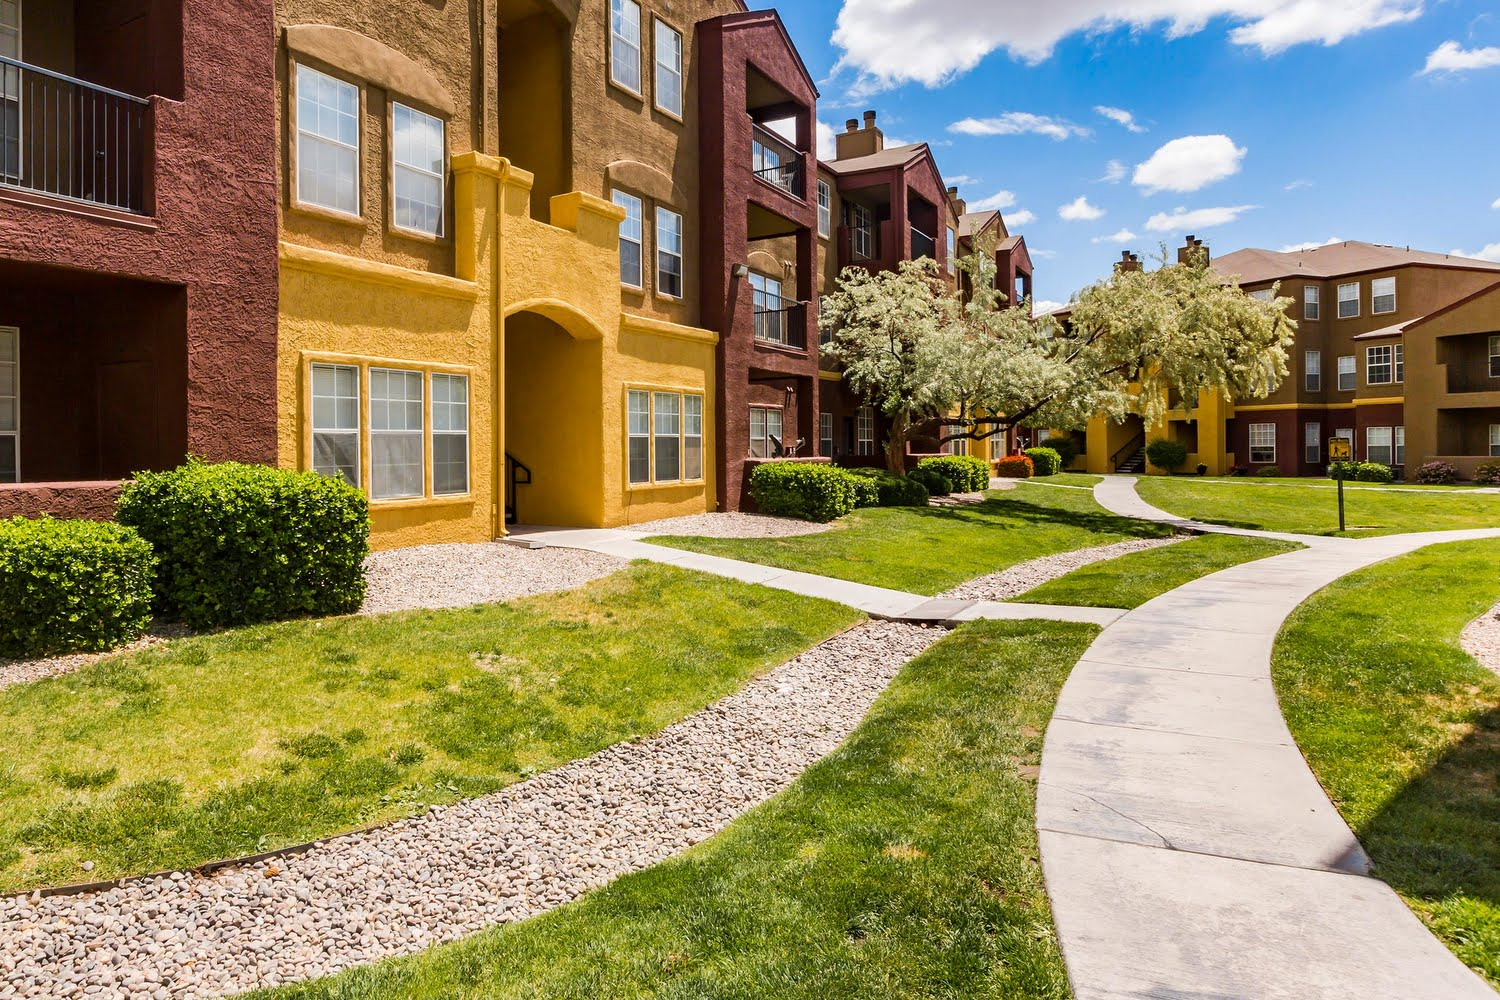 Camino Real Apartments For Rent In Albuquerque New Mexico